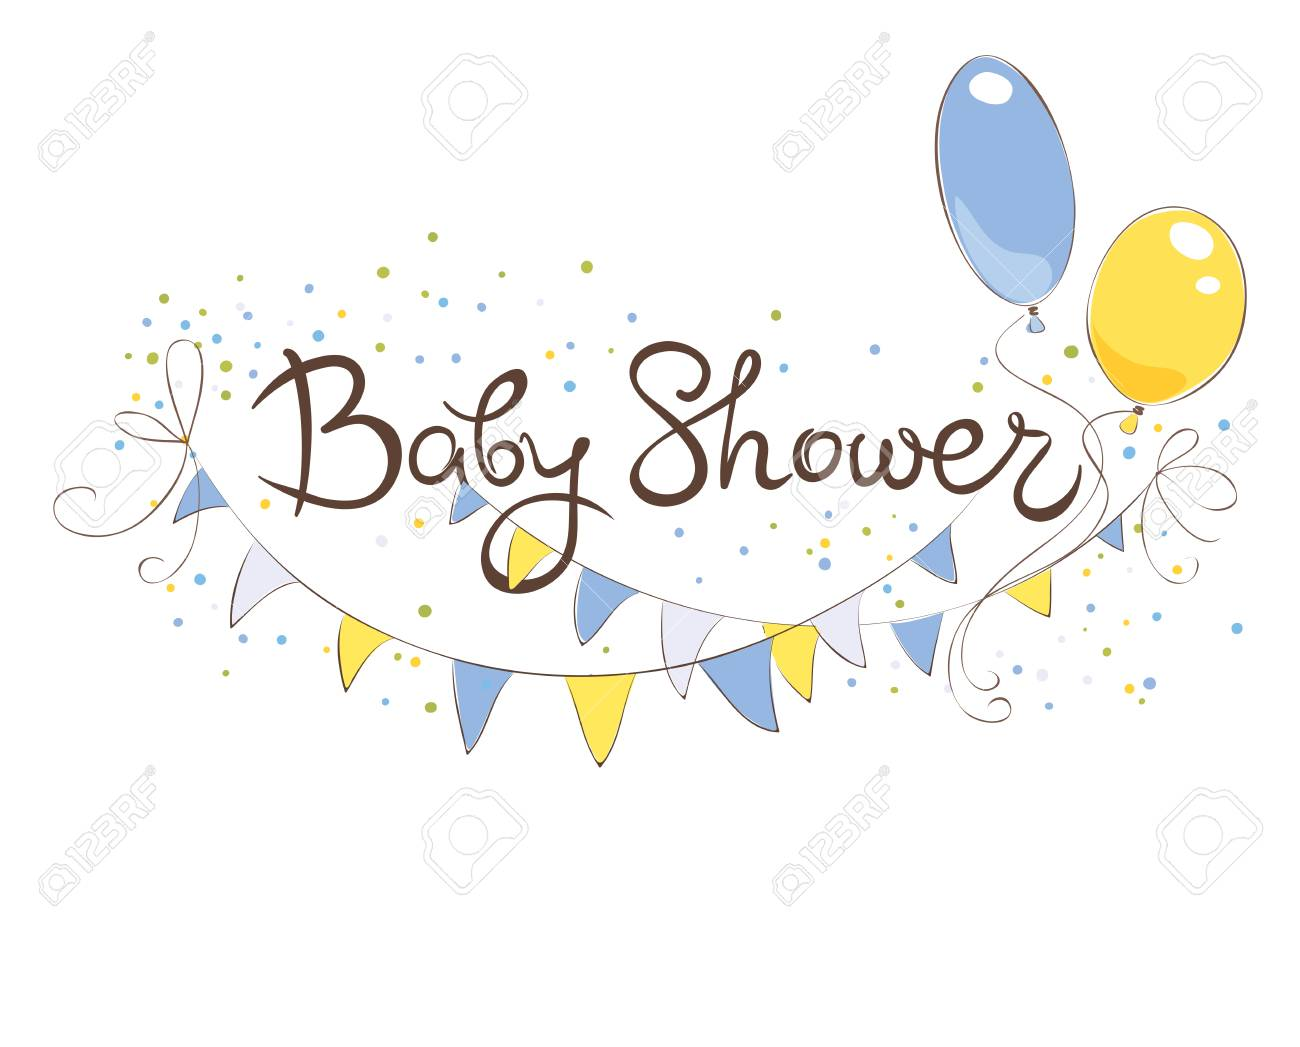 Baby Shower Banner For Boy Funny Vector Illustration With Balloons Royalty Free Cliparts Vectors And Stock Illustration Image 66131908